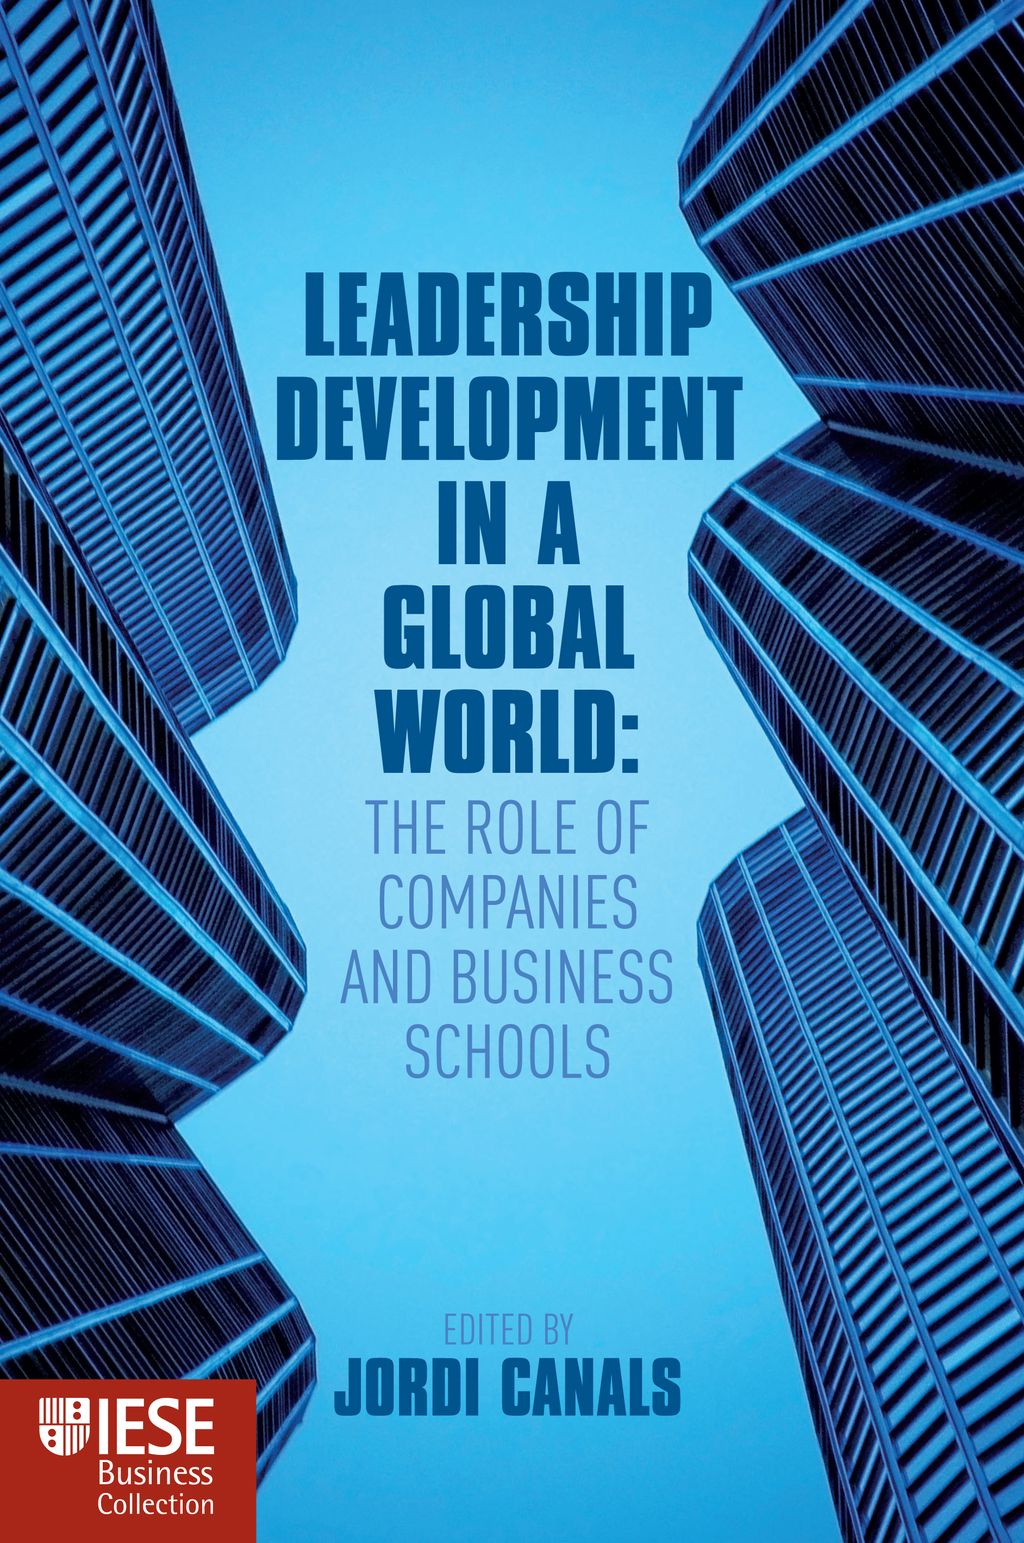 Leadership Development in a Global World The Role of Companies and Business Schools